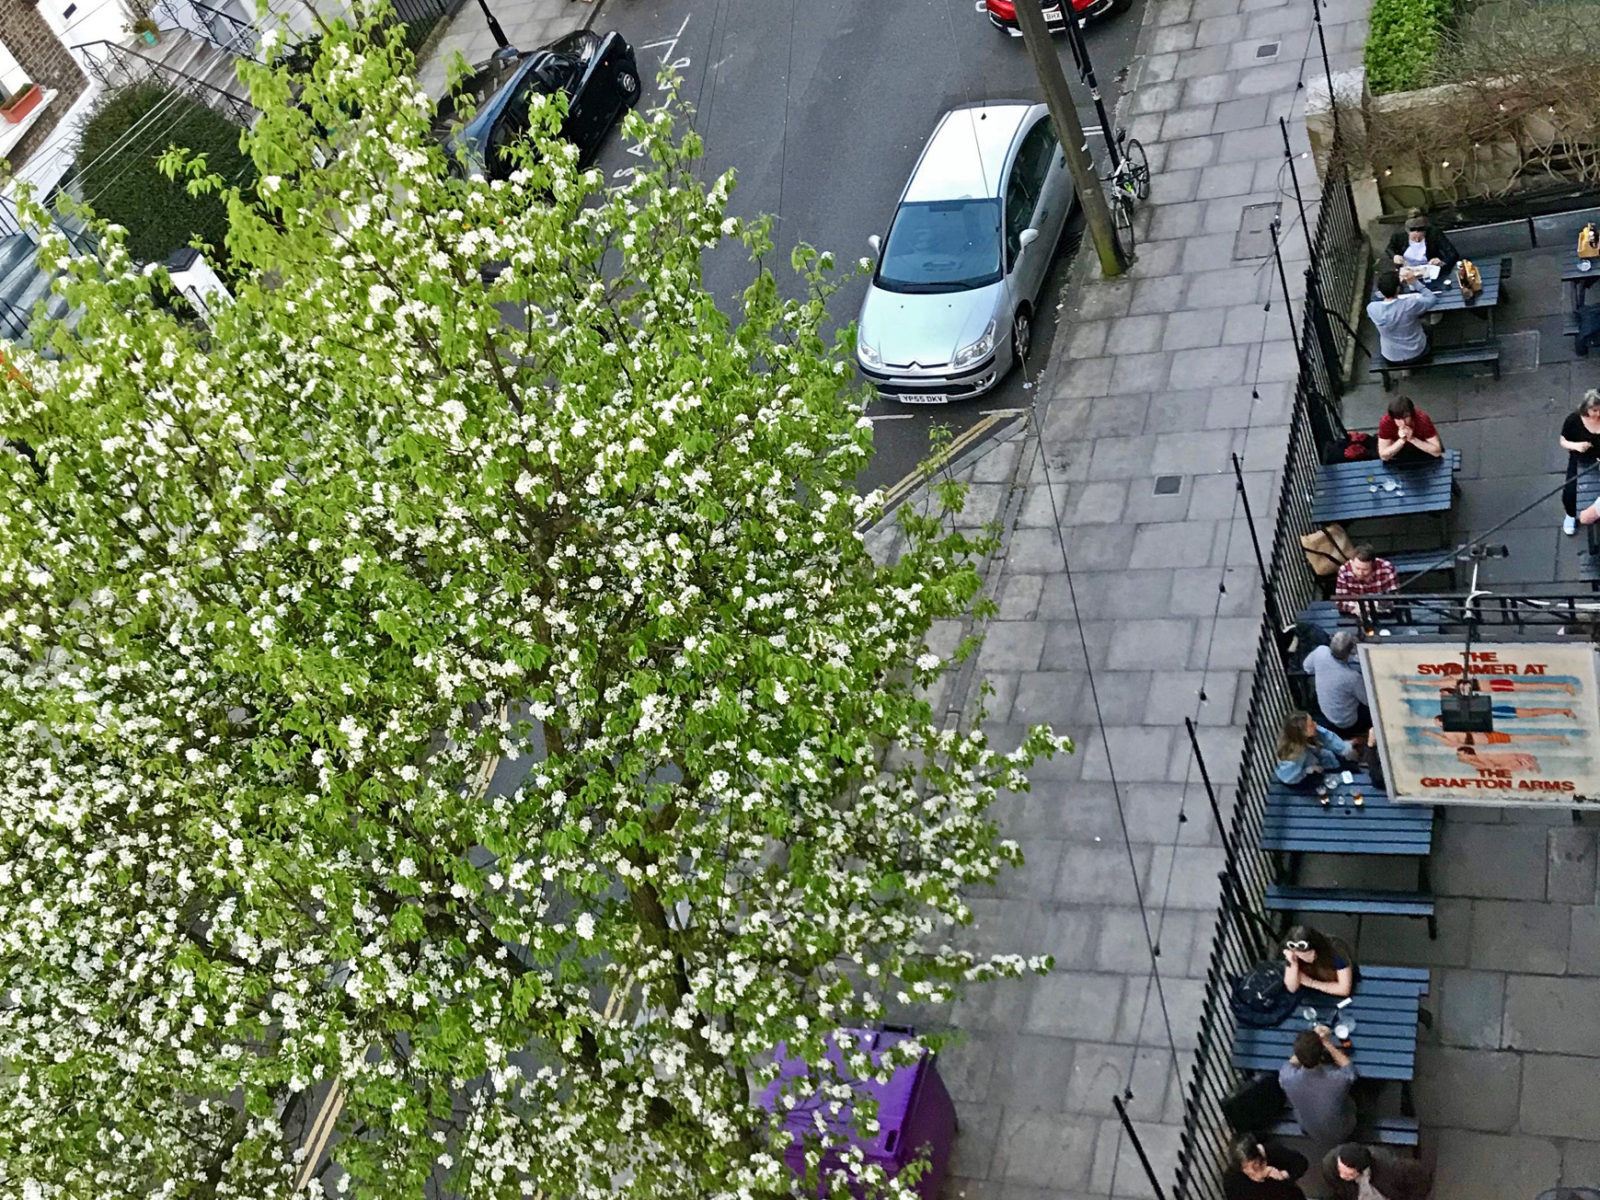 We are lucky to be in a quiet residential street so our beer garden is a lovely place to enjoy your pint on a warm day